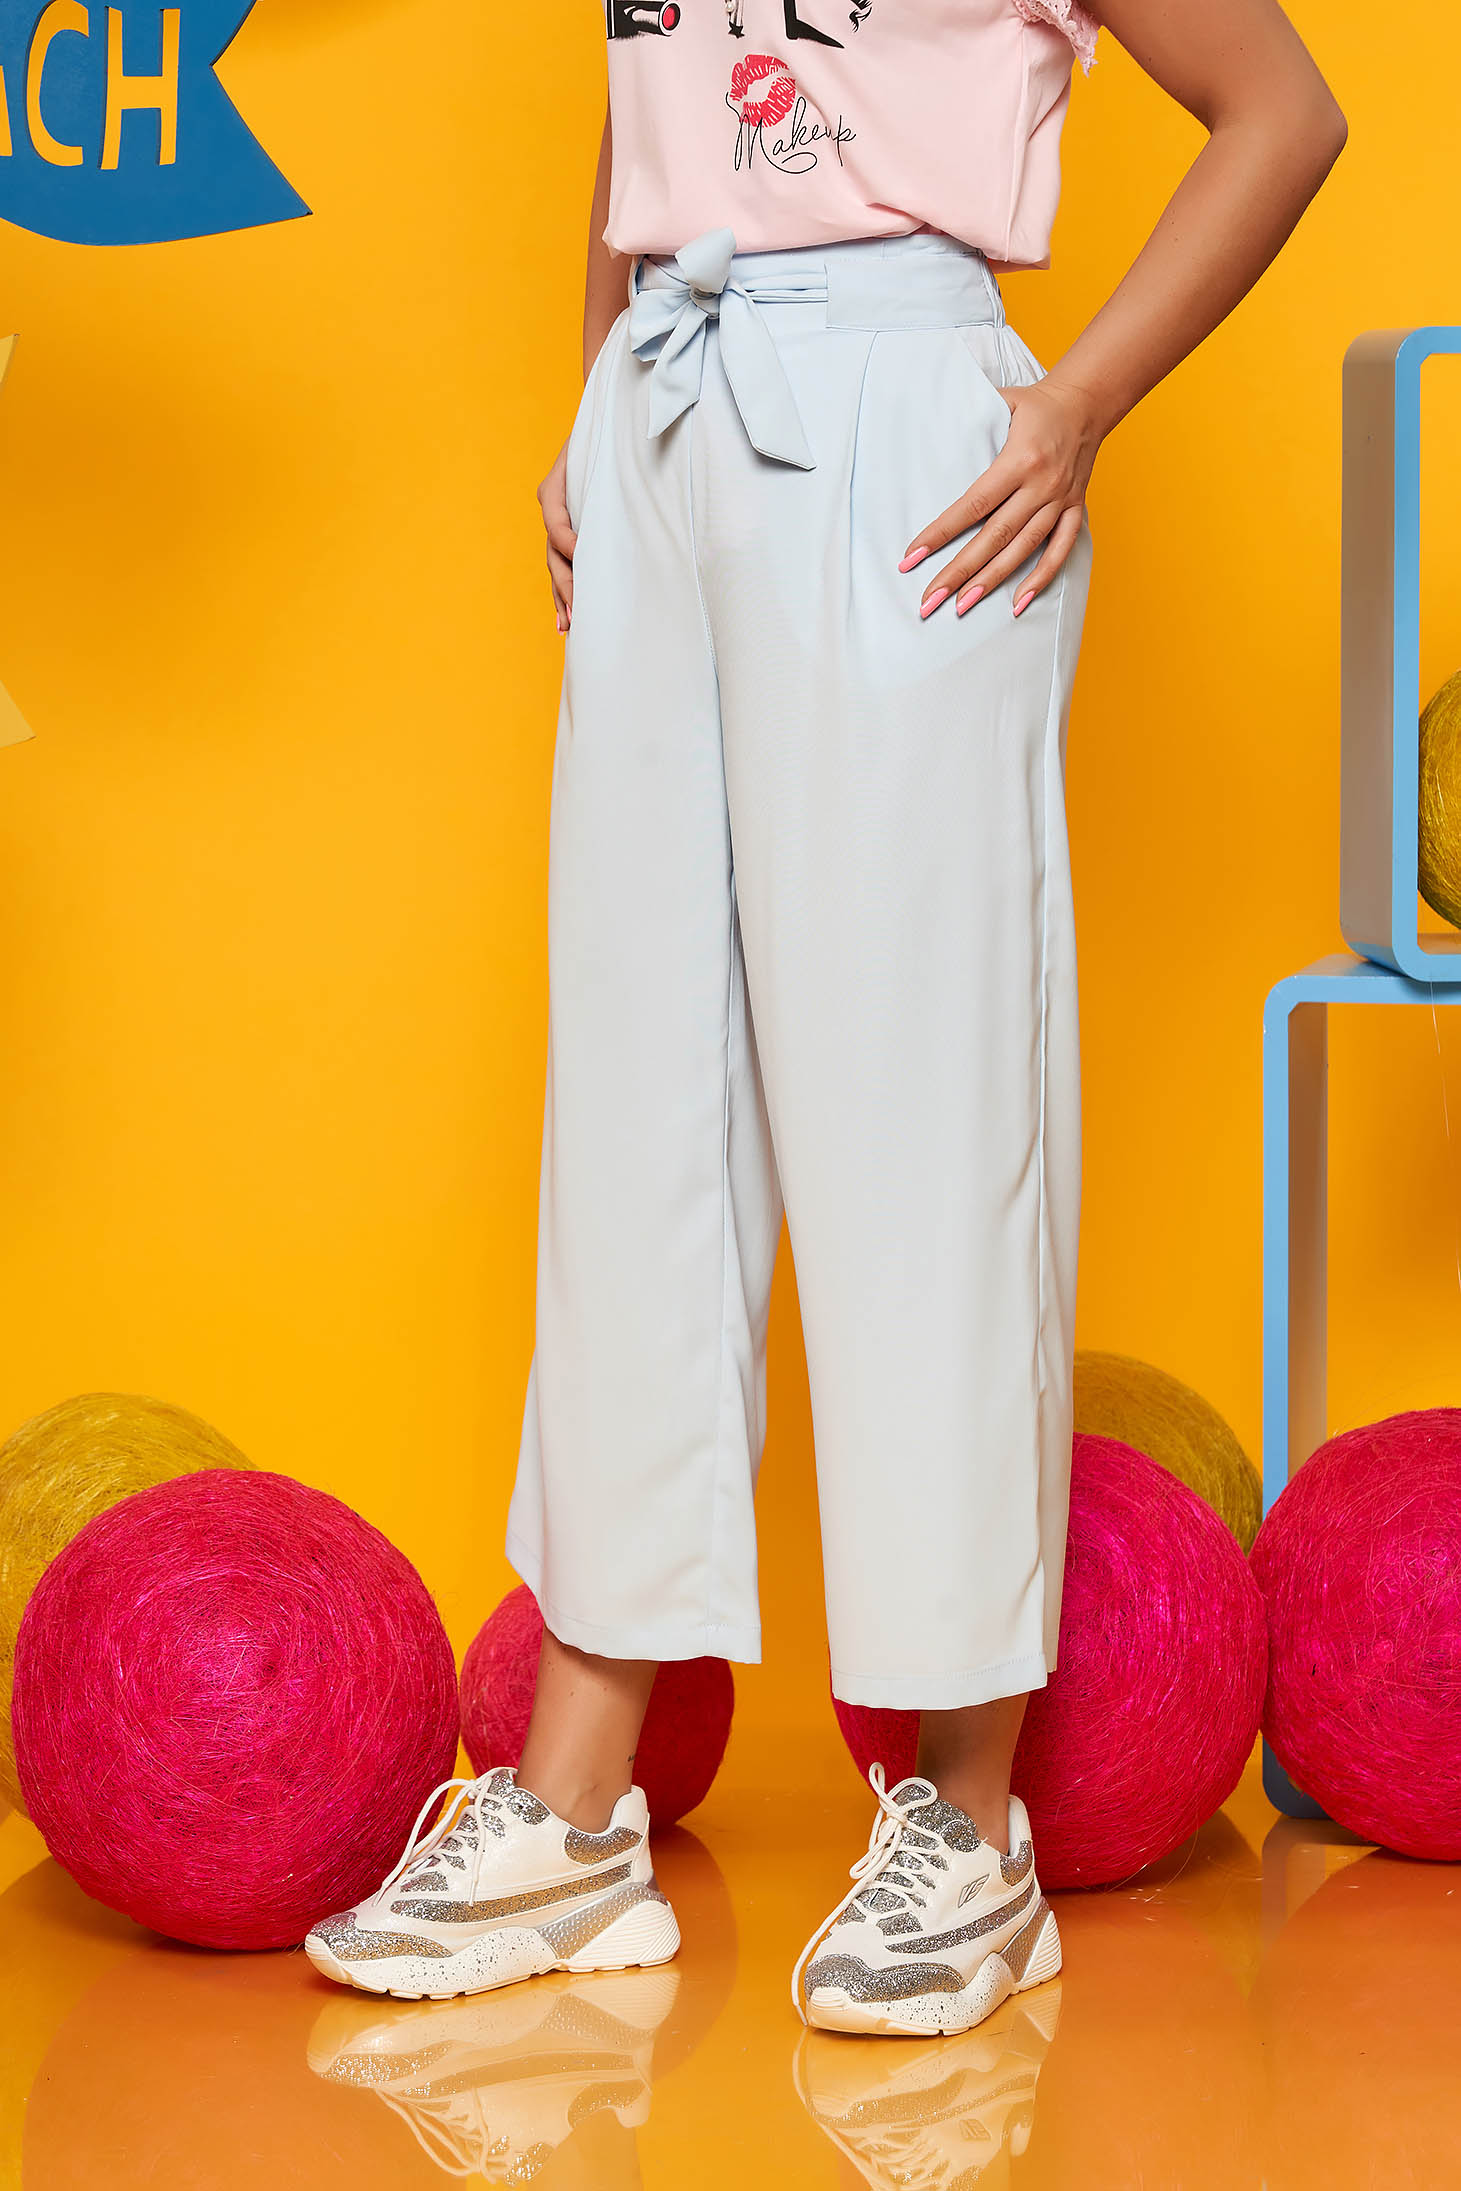 Lightblue trousers elegant high waisted with pockets airy fabric accessorized with tied waistband